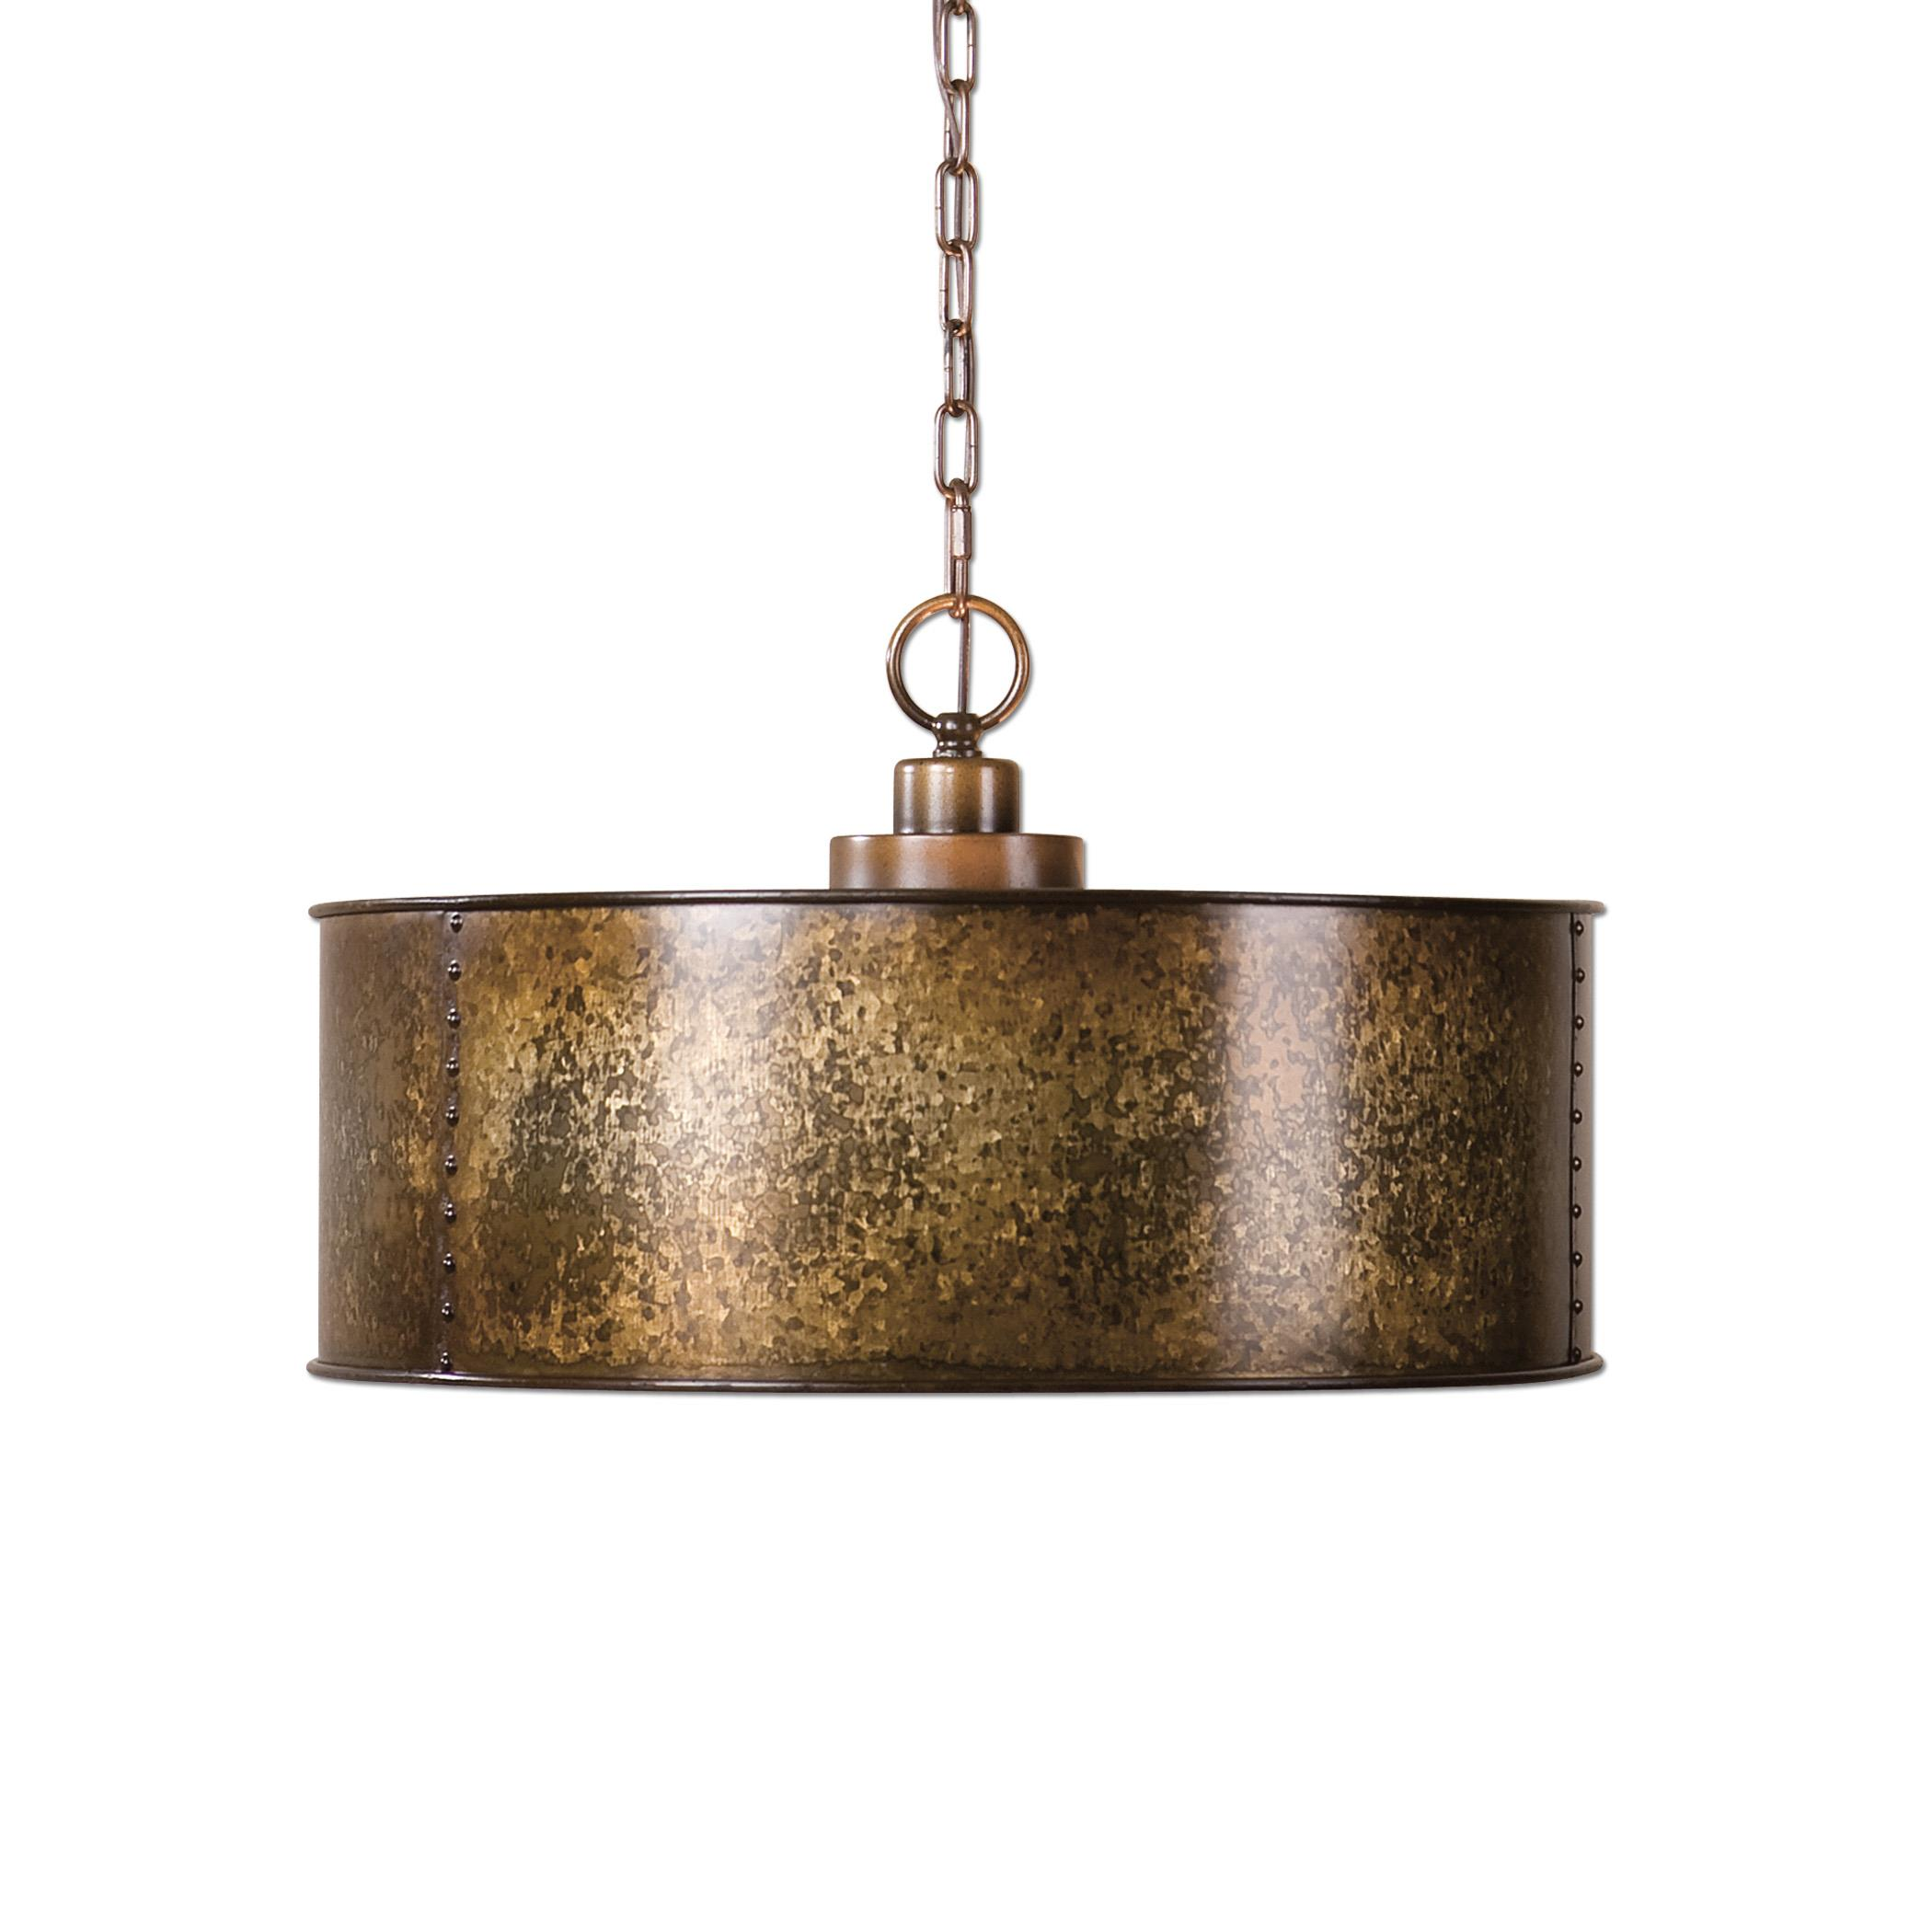 Uttermost Lighting Fixtures Wolcott 3 Light Golden Pendant - Item Number: 22066